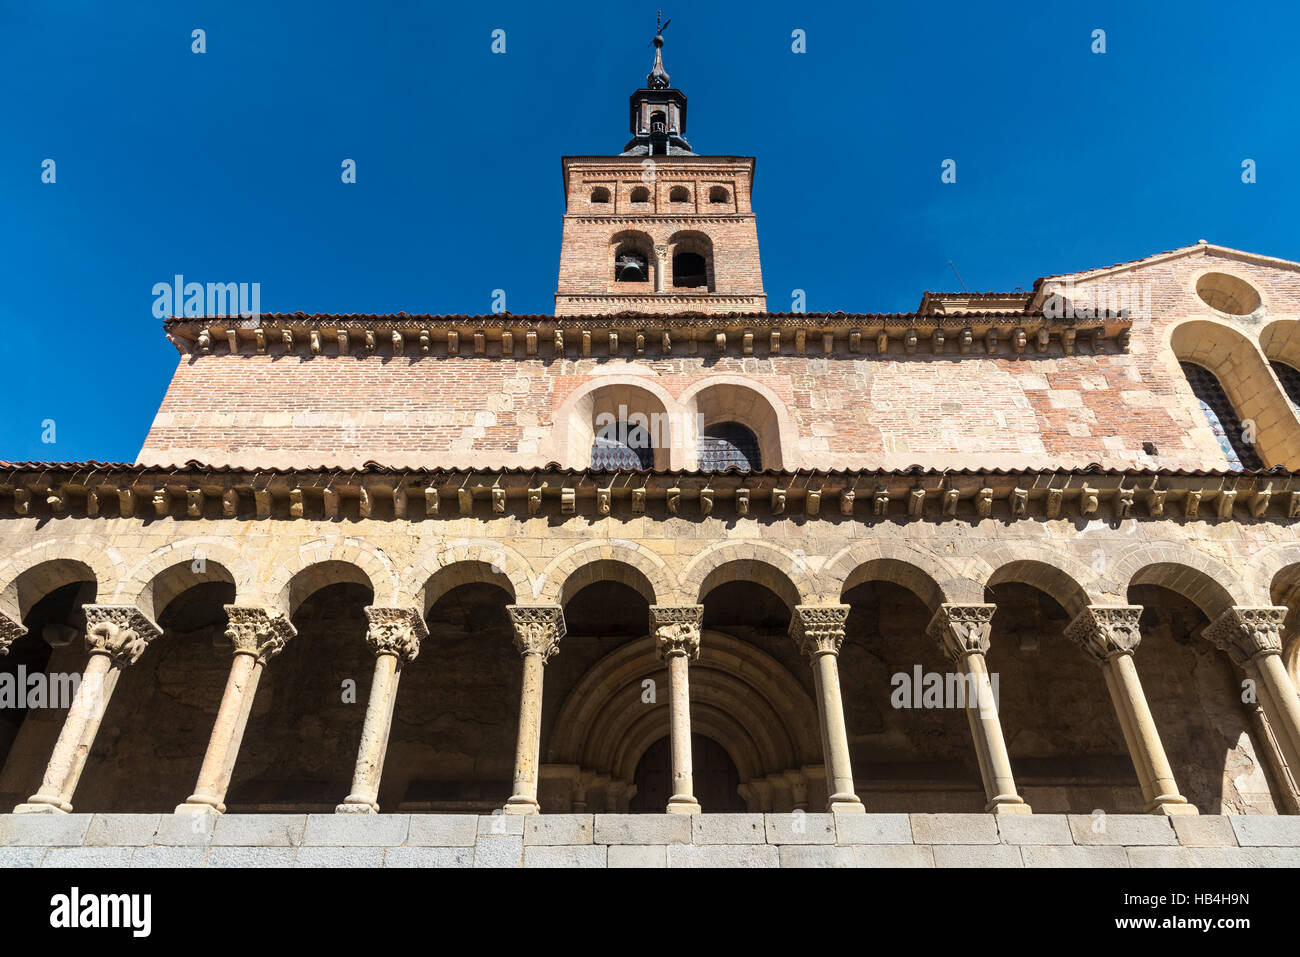 The romanesque Church of San Martin with its mudejar bellfry, in the Plaza Medina del Campo, Segovia, Spain Stock Photo